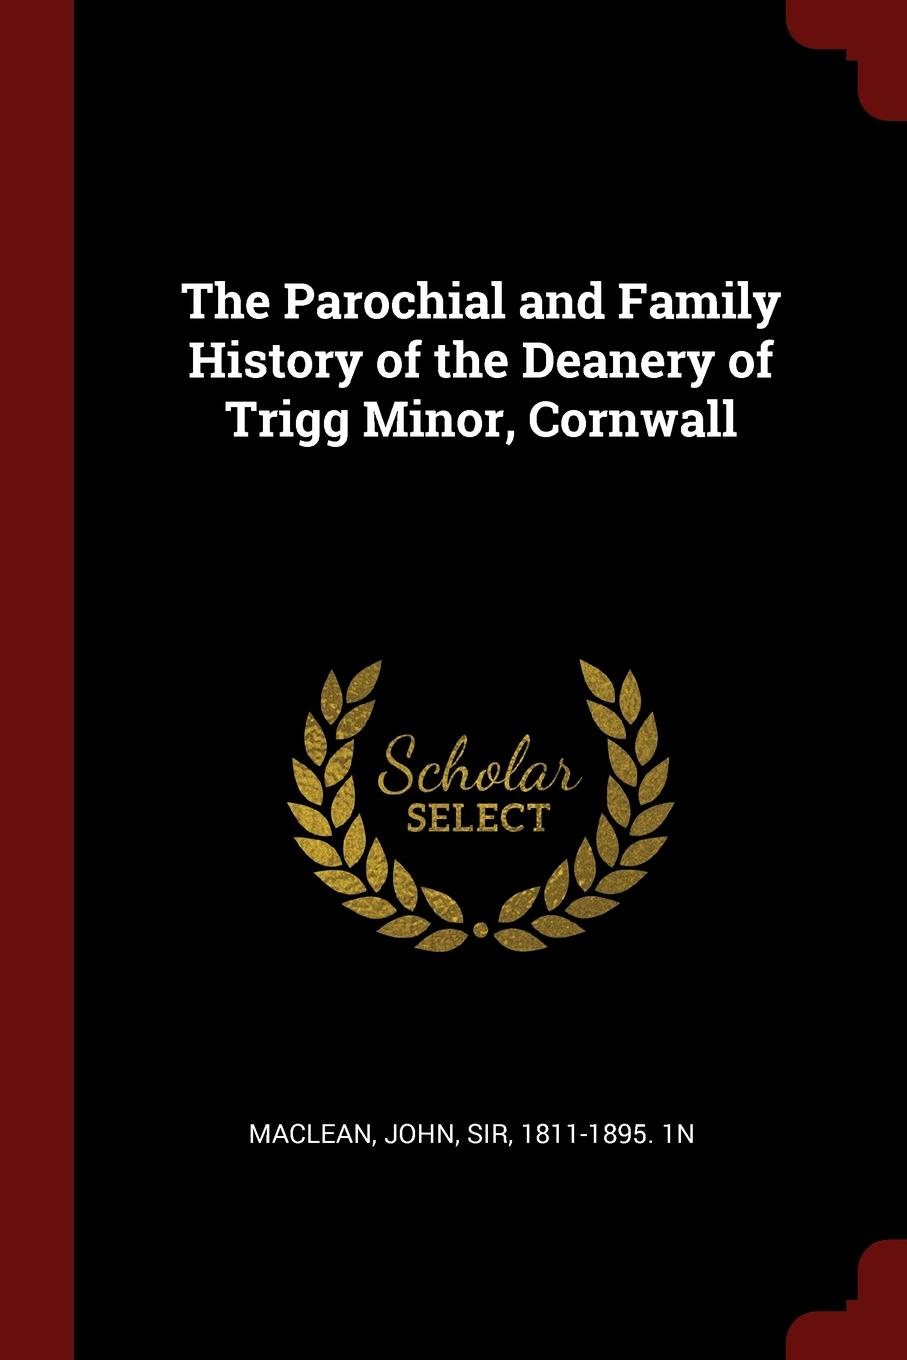 John Maclean The Parochial and Family History of the Deanery of Trigg Minor, Cornwall john maclean the parochial and family history of the deanery of trigg minor cornwall